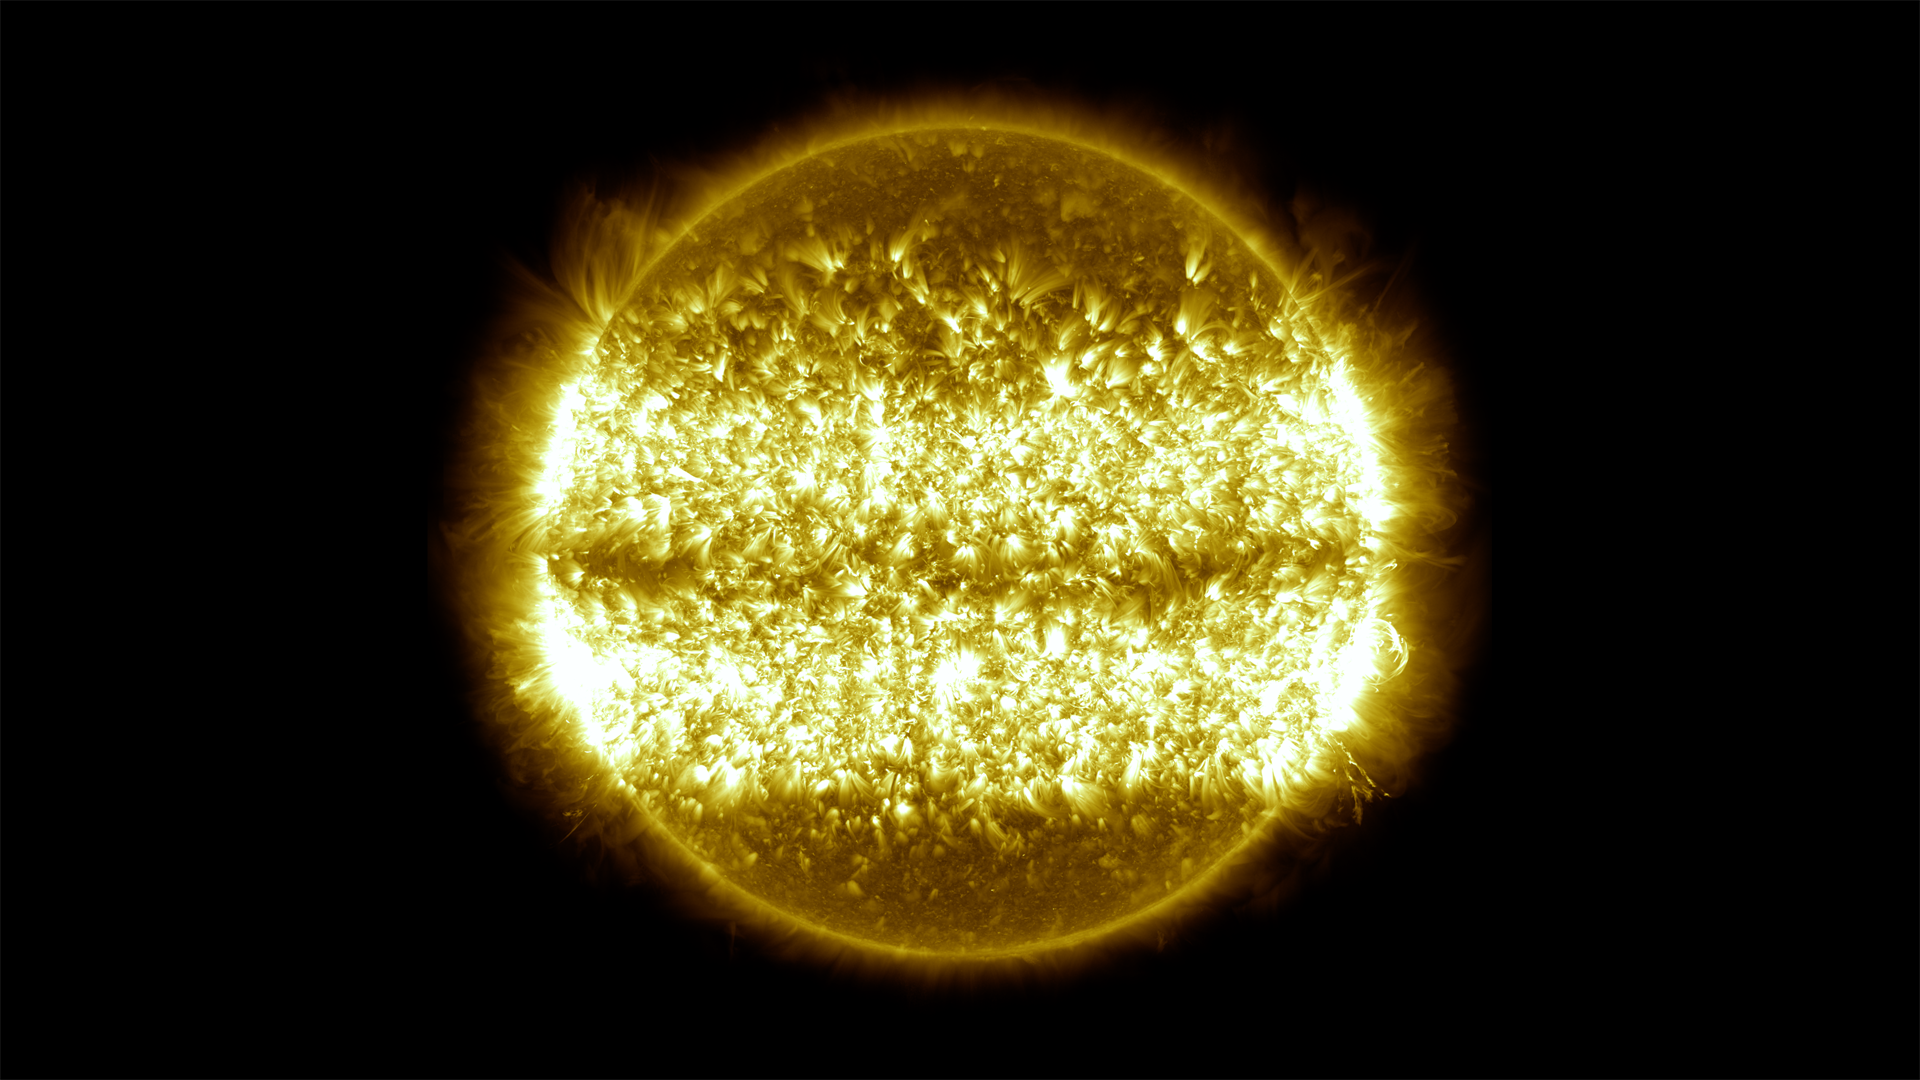 Stunning NASA time-lapse video shows 10 years in life of sun